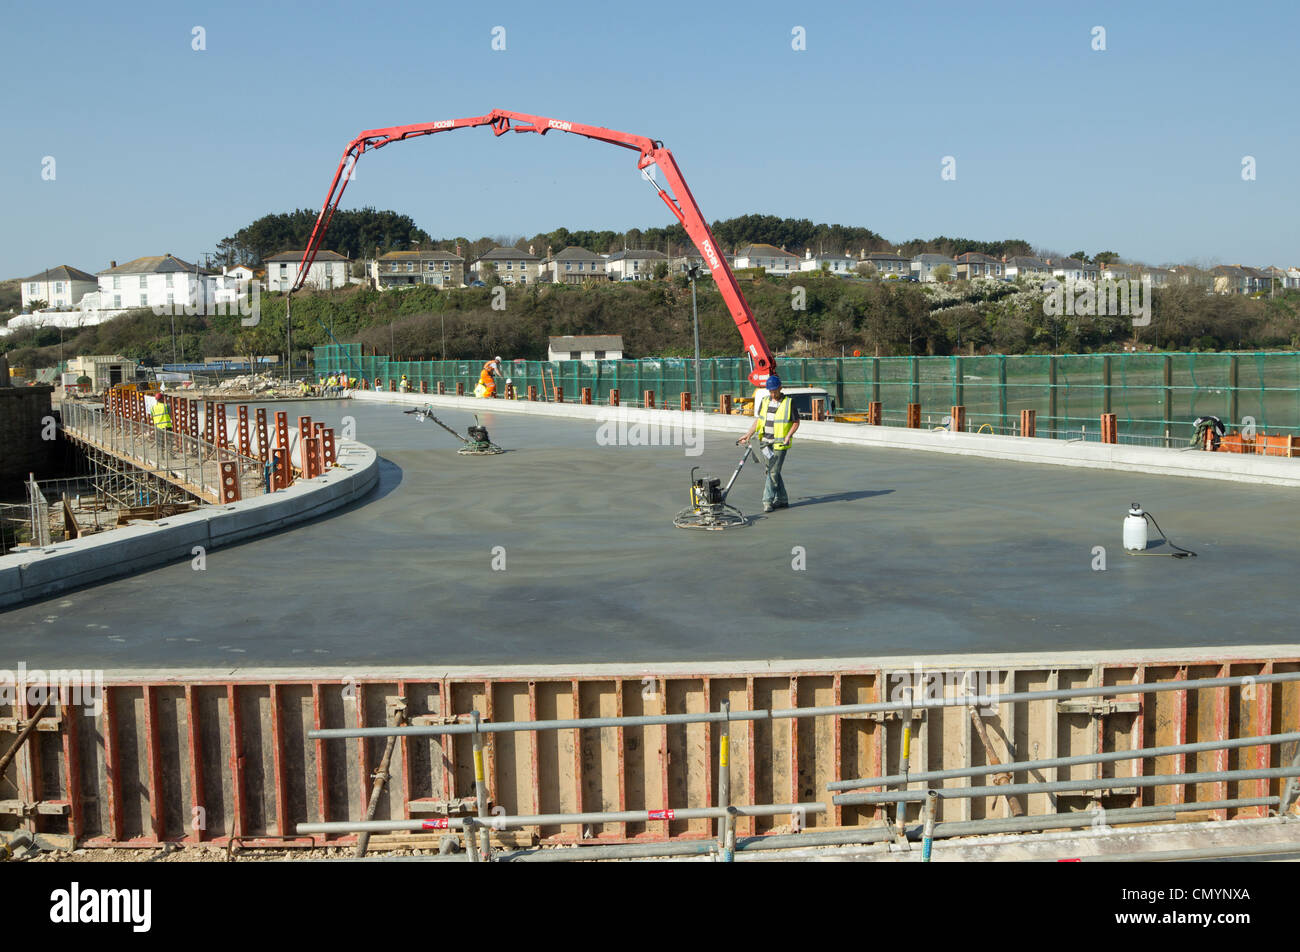 Smoothing the concrete during the concrete pour for the deck of the new bridge over Copperhouse Pool in Hayle, Cornwall UK. Stock Photo